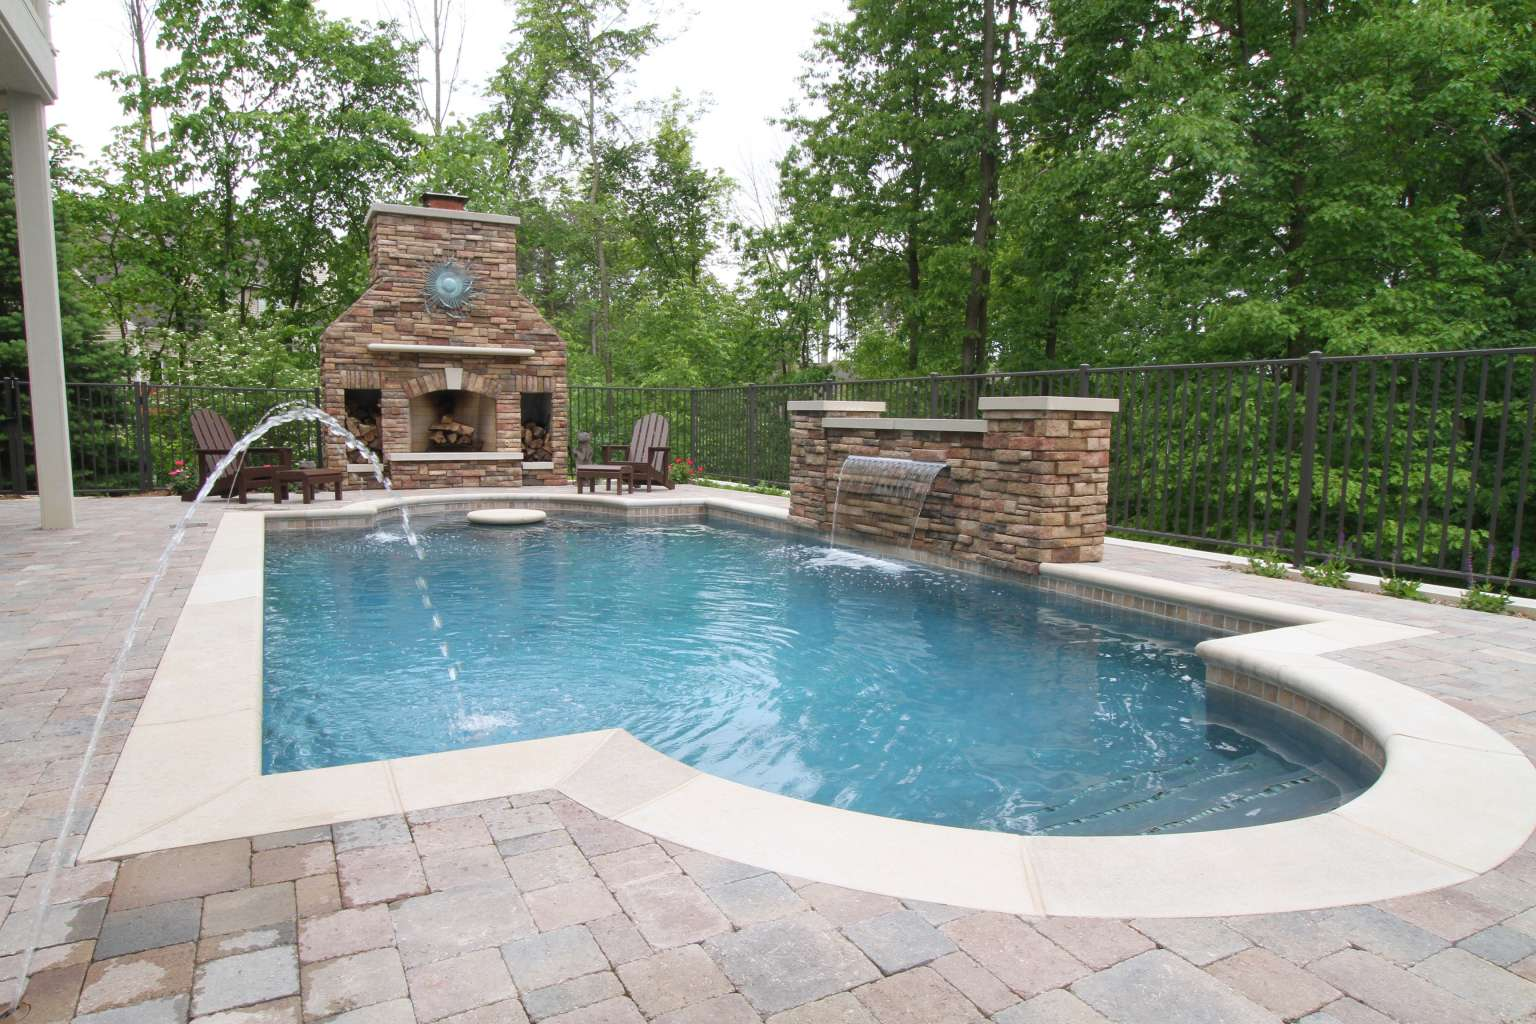 Grand Rapids Pool, Waterfeature, Fireplace, and Outdoor ... on Outdoor Kitchen By Pool id=29991